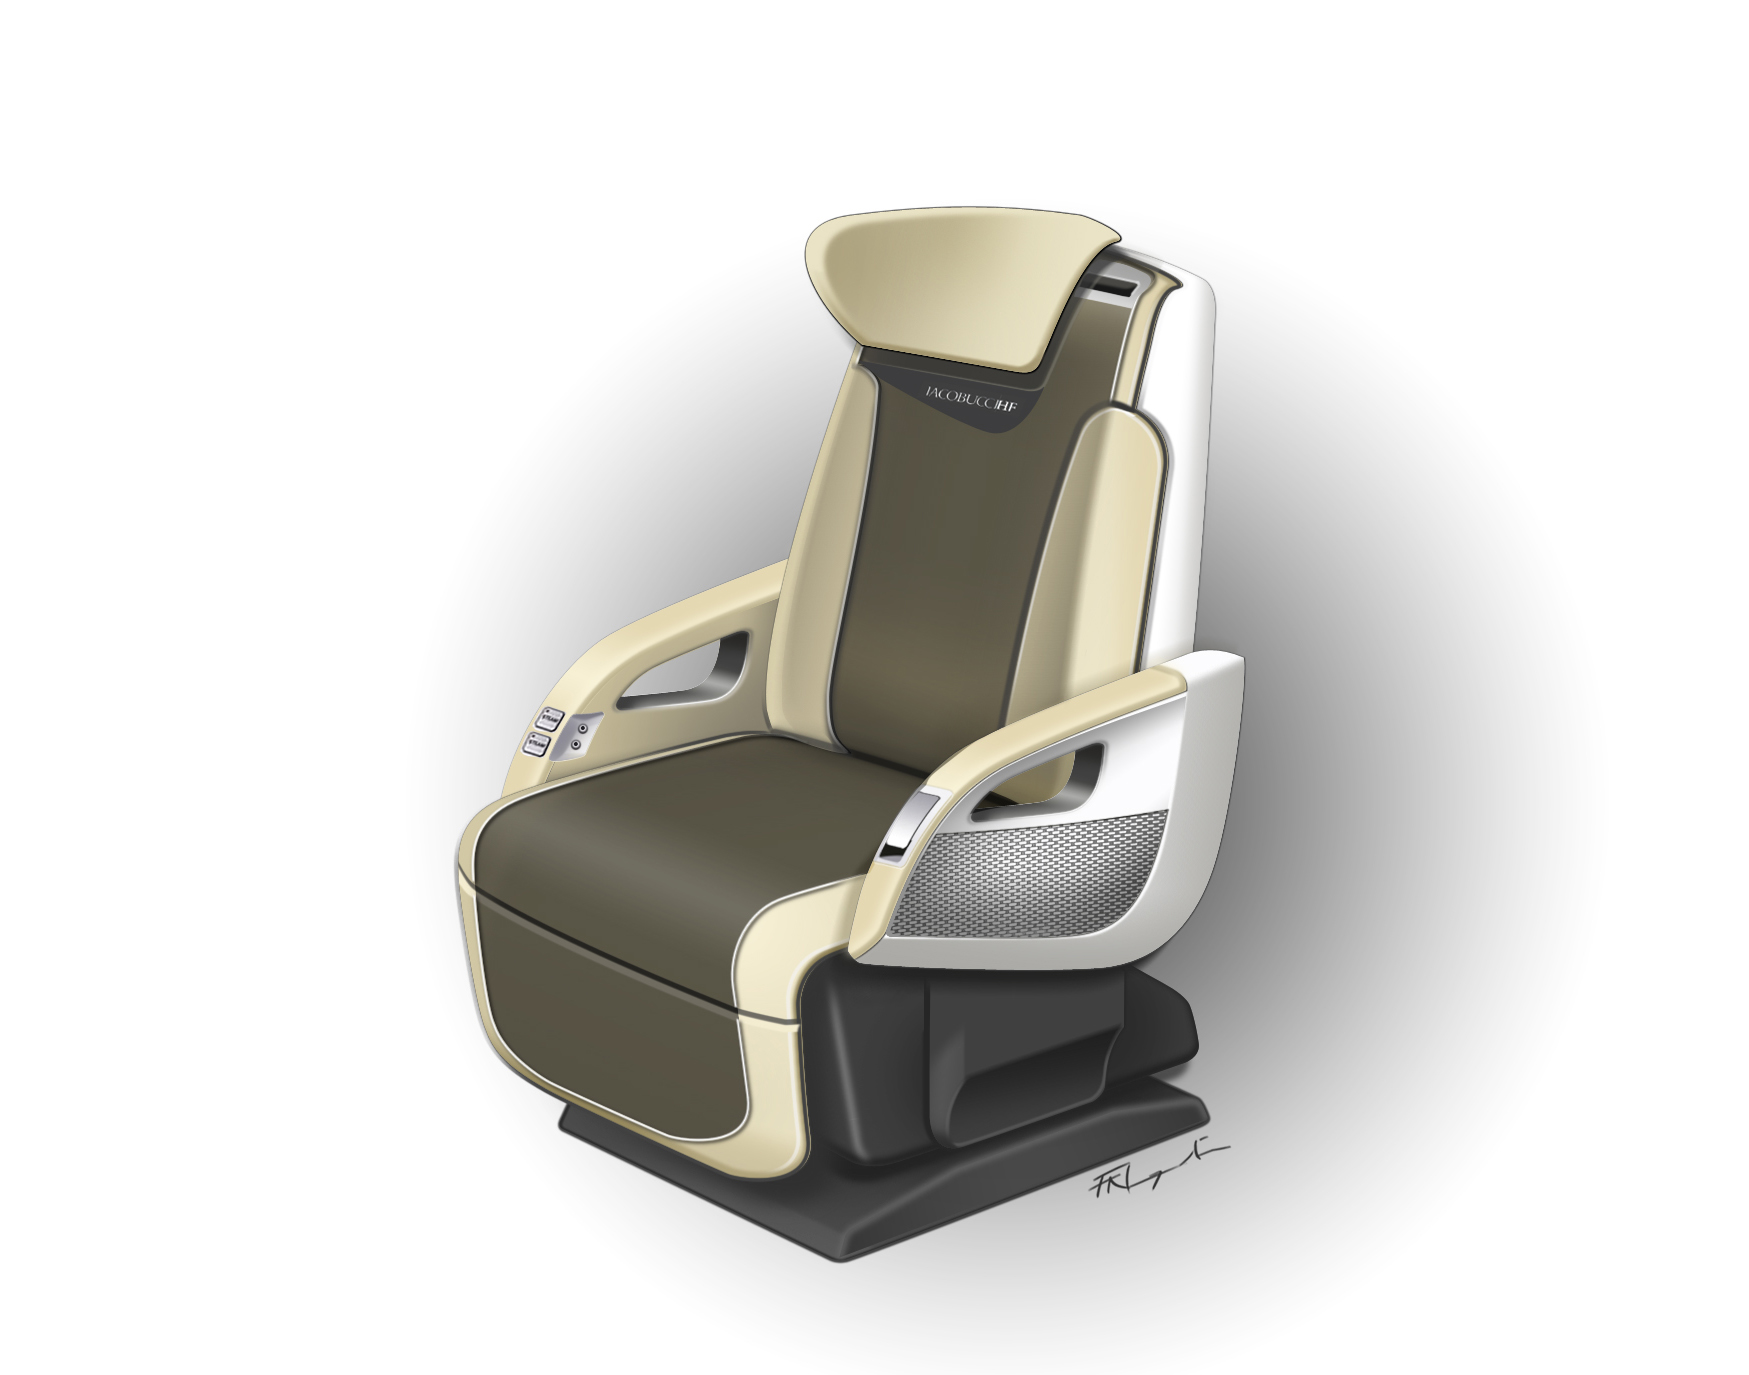 Designworksusa Designs Business Jet Seats For Premium